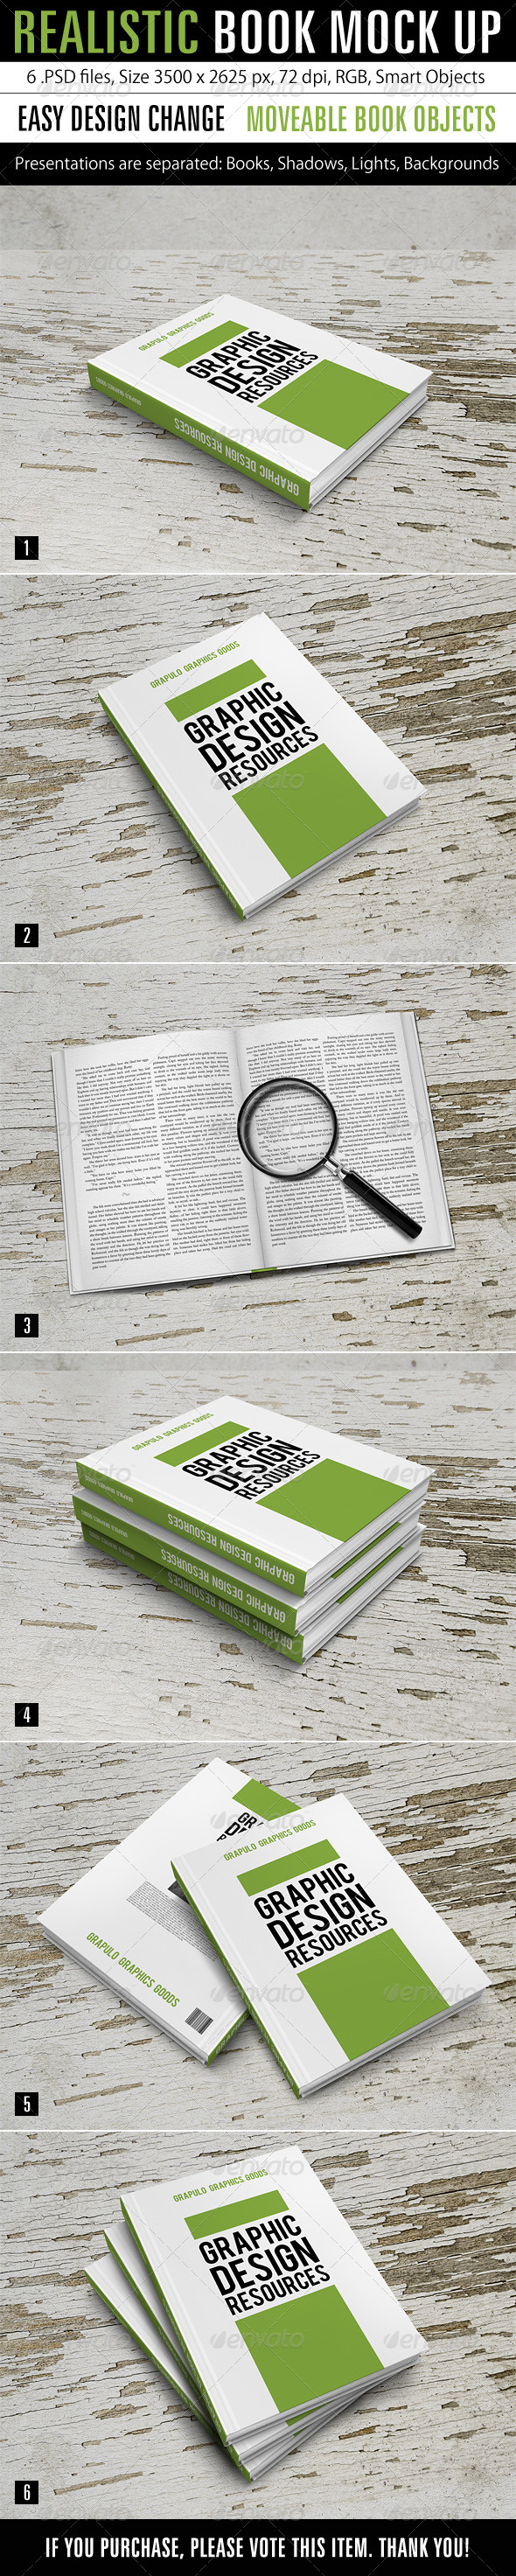 GraphicRiver Realistic Book Mock Up 7376884